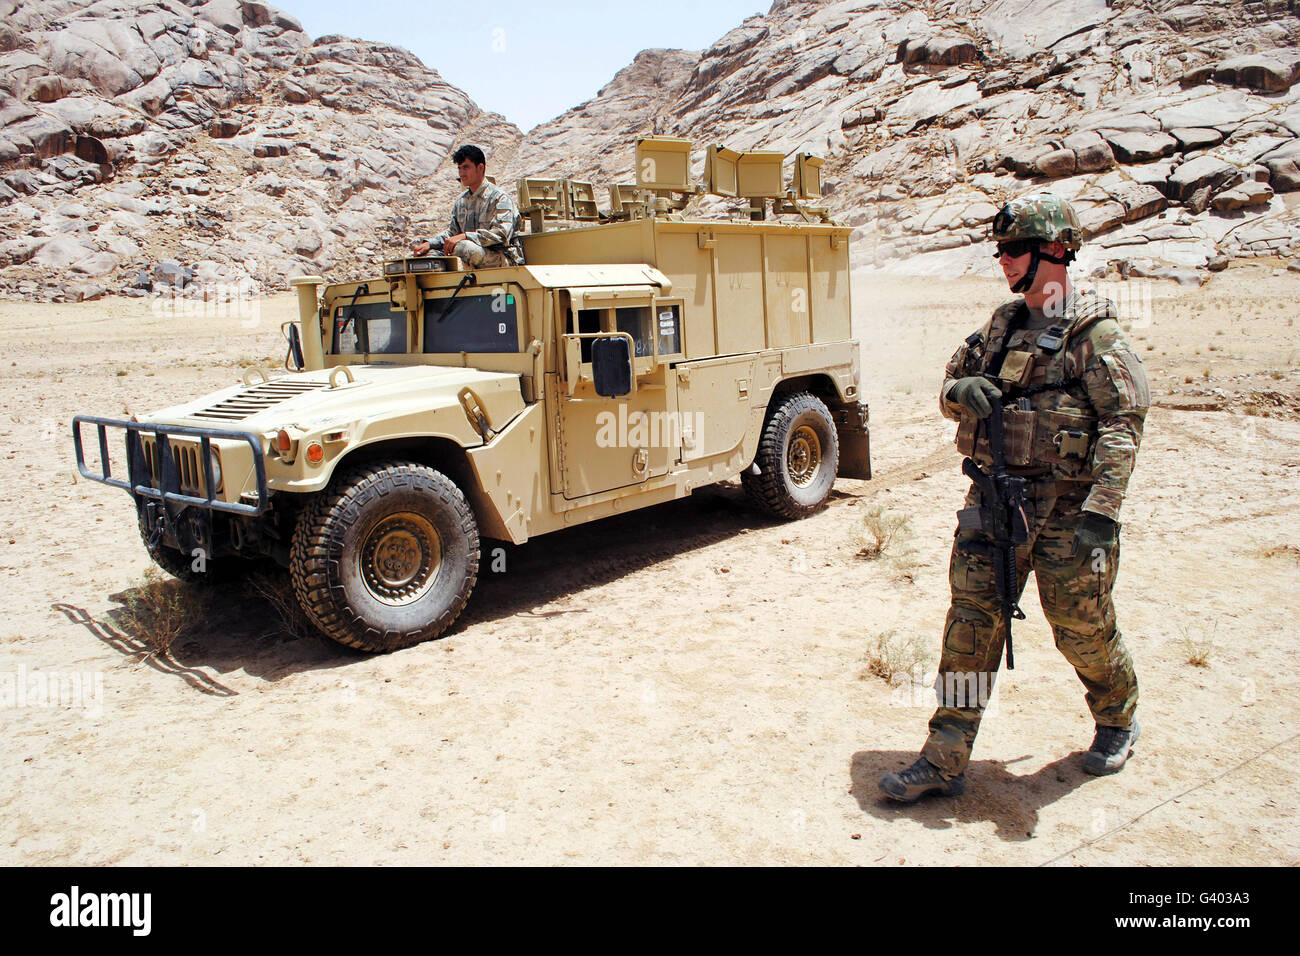 U.S. Air Force soldier guides an Afghan Border Police vehicle. - Stock Image